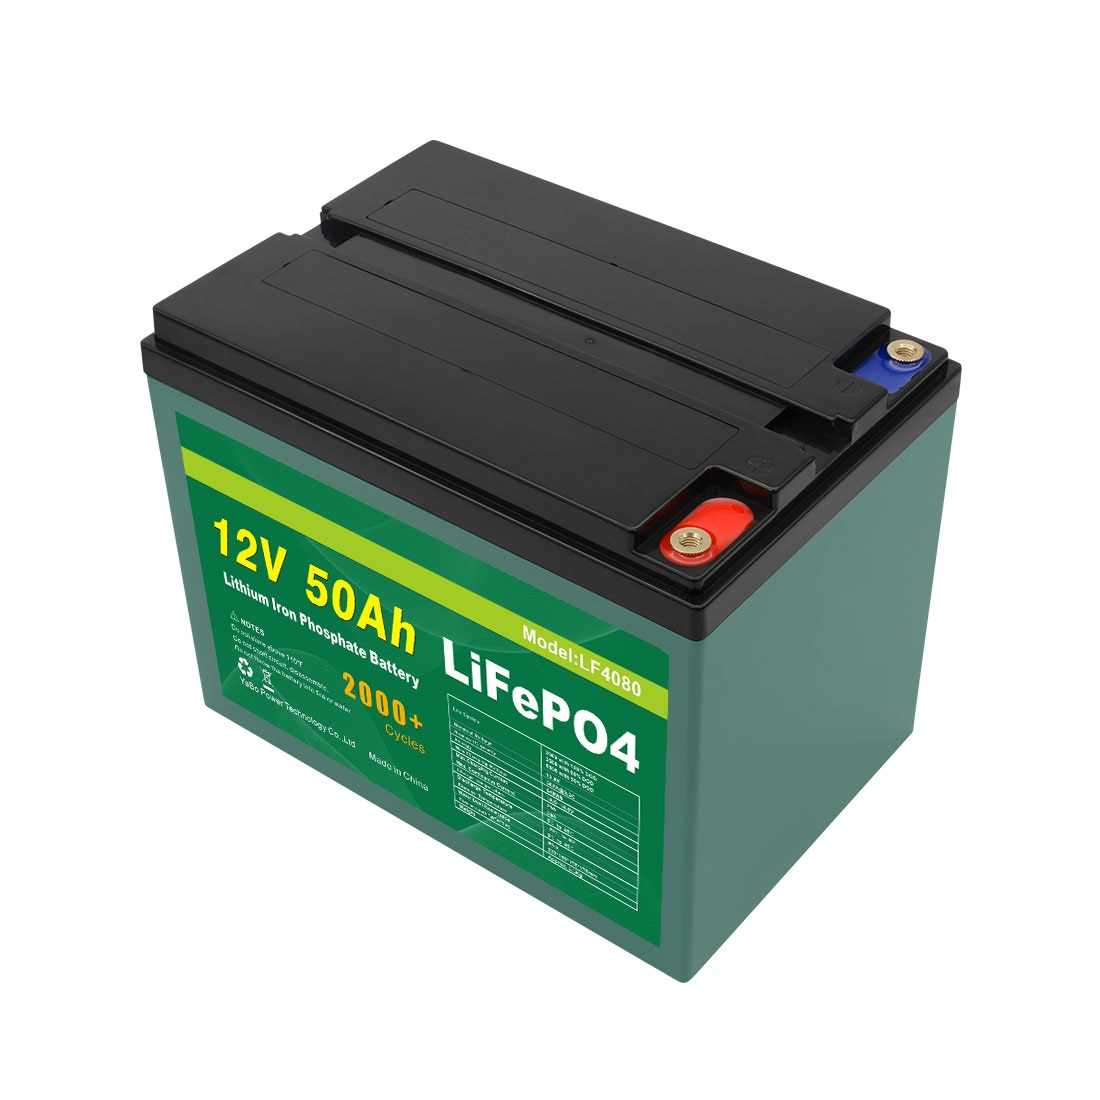 Customized Standard Terminal M6 Deep Cycle Lithium Ion Battery Pack Lifepo4 50Ah 18650 Lithium Battery enlarge